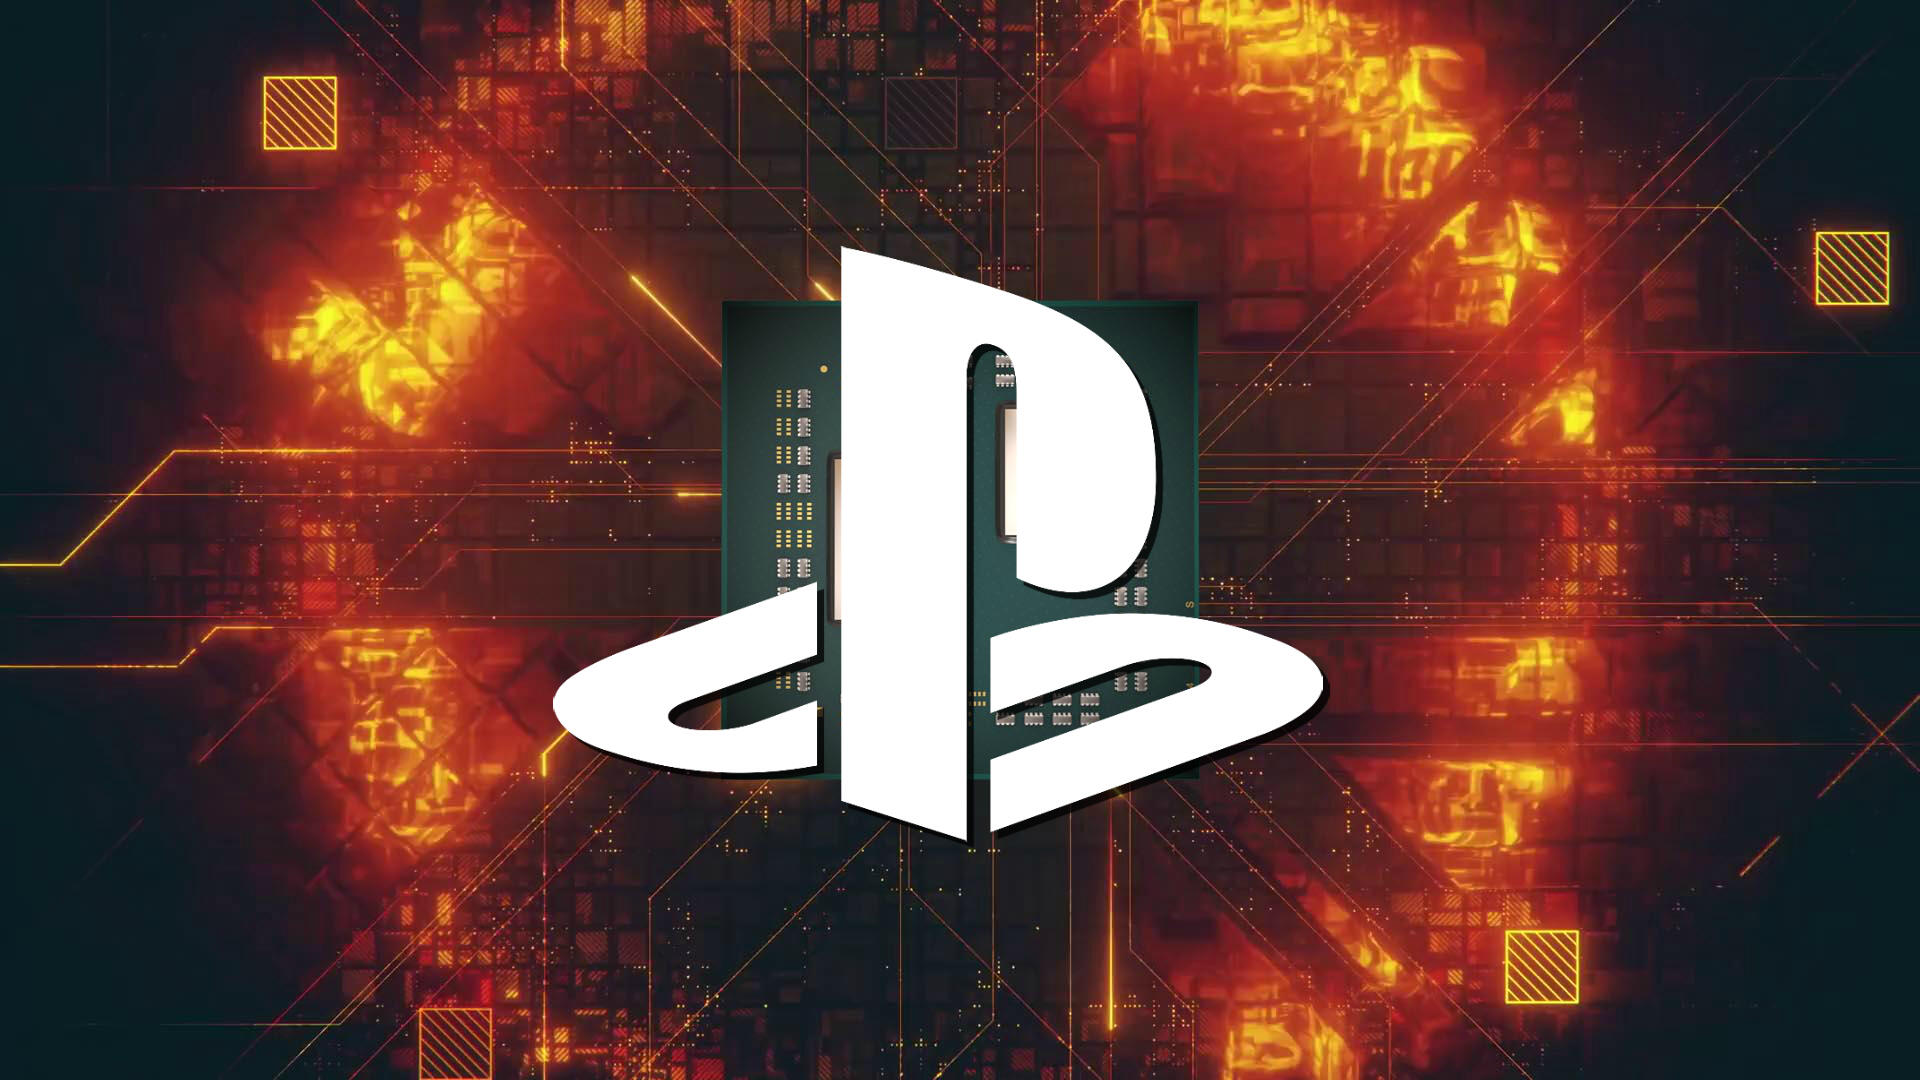 PlayStation 5 Is Official, Releasing Holiday 2020 With a New Controller and Hardware Accelerated Ray-Tracing